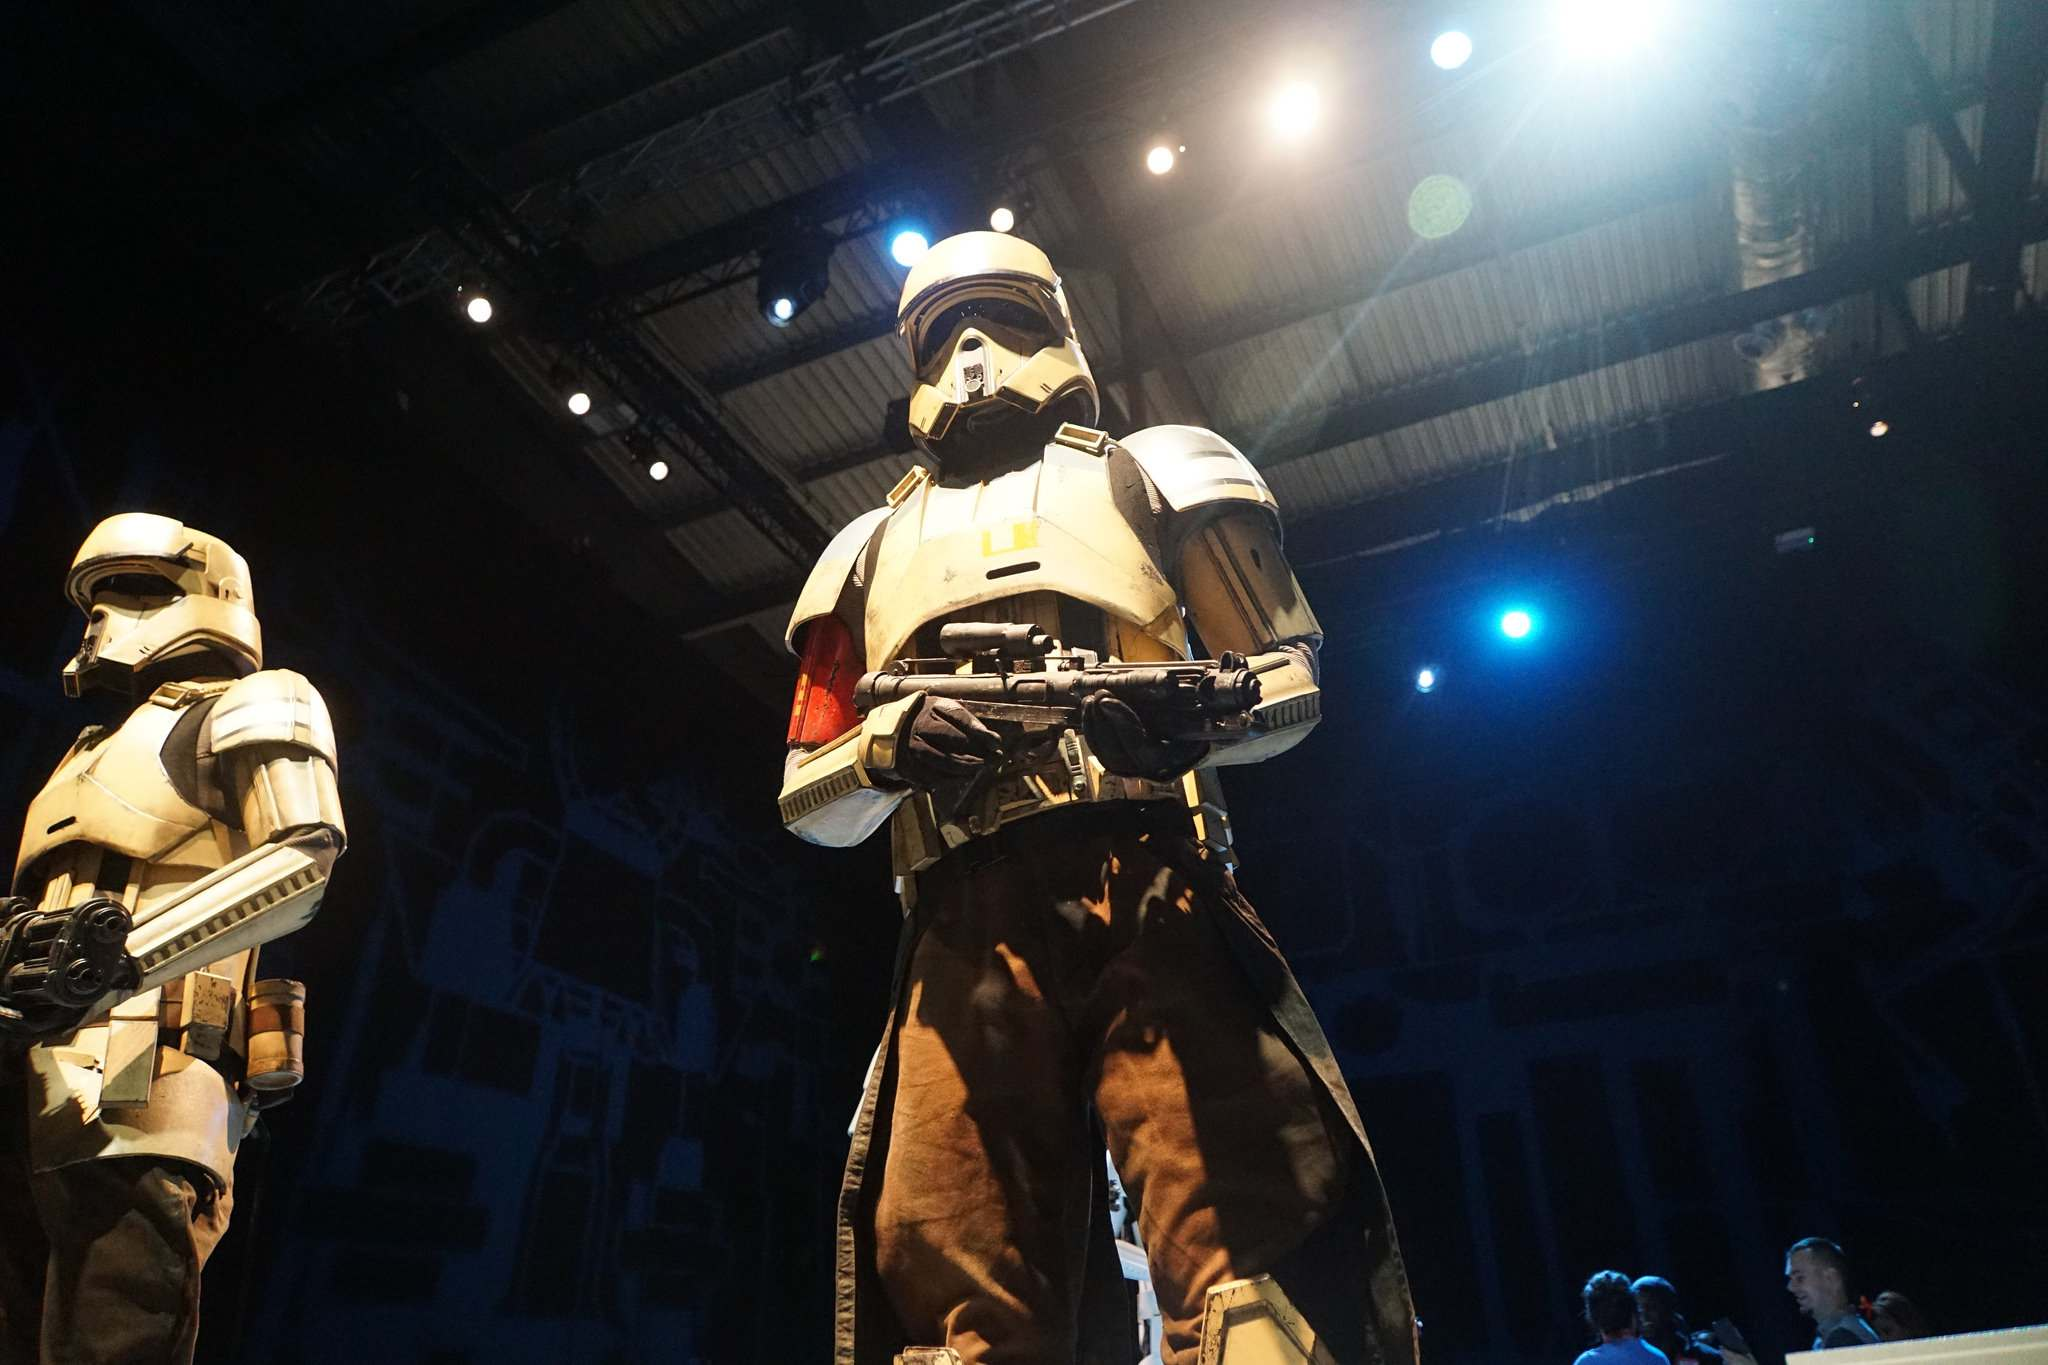 shore trooper6 Star Wars Rogue One Shore Trooper at Star Wars Celebration 2016